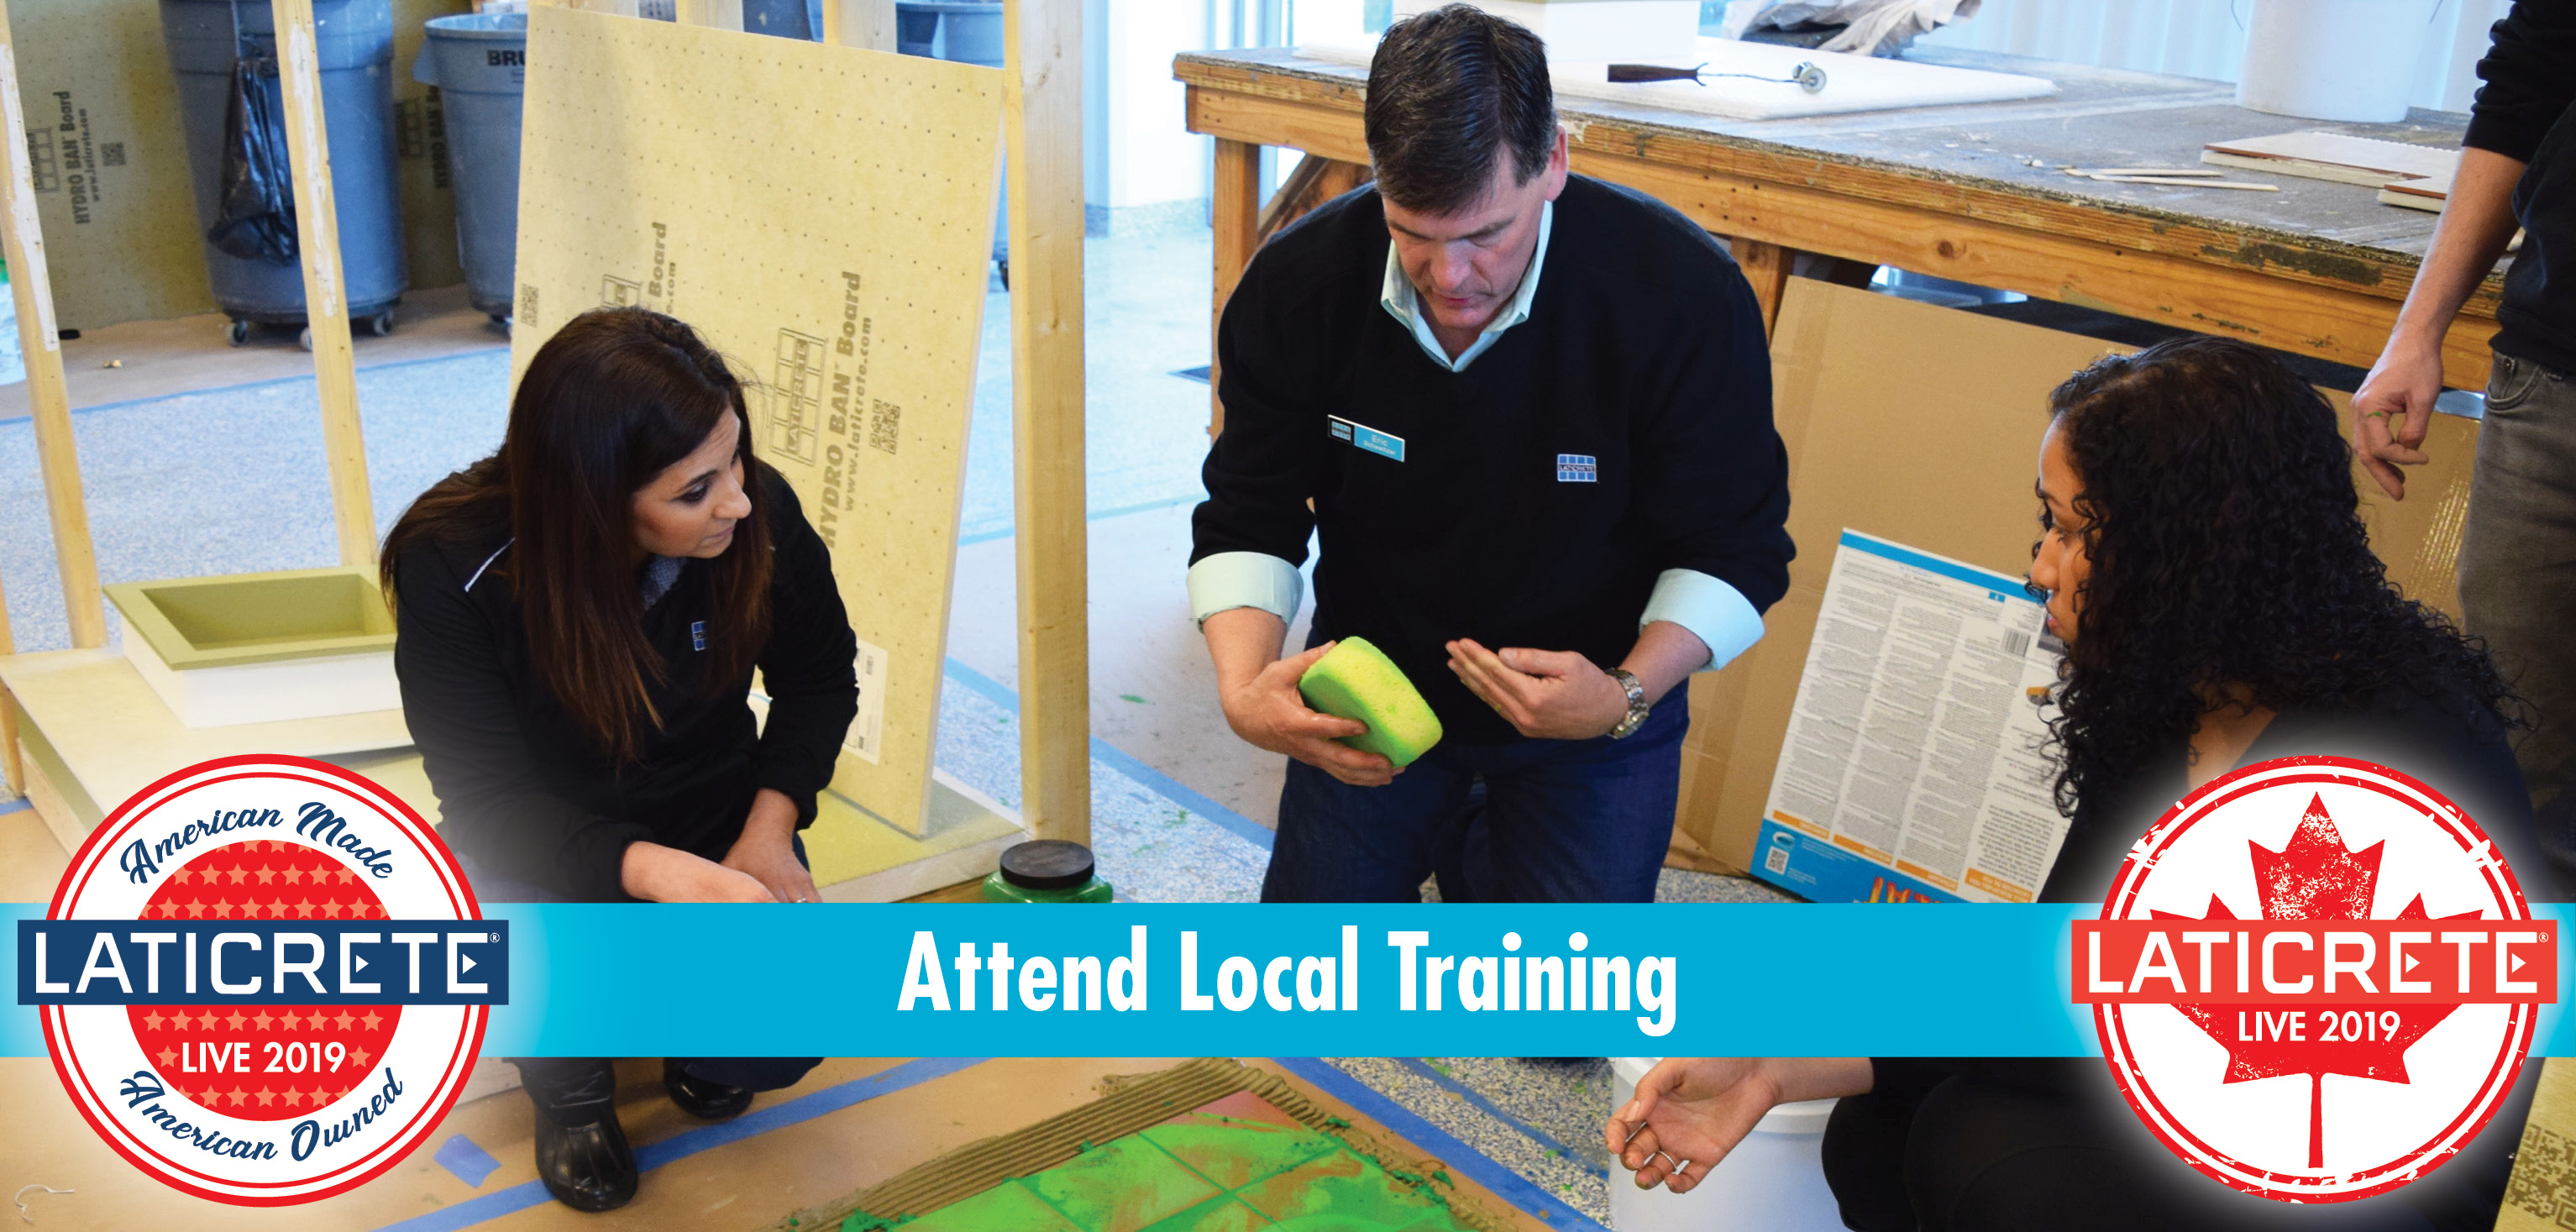 LATICRETE LIVE - LOCAL Training